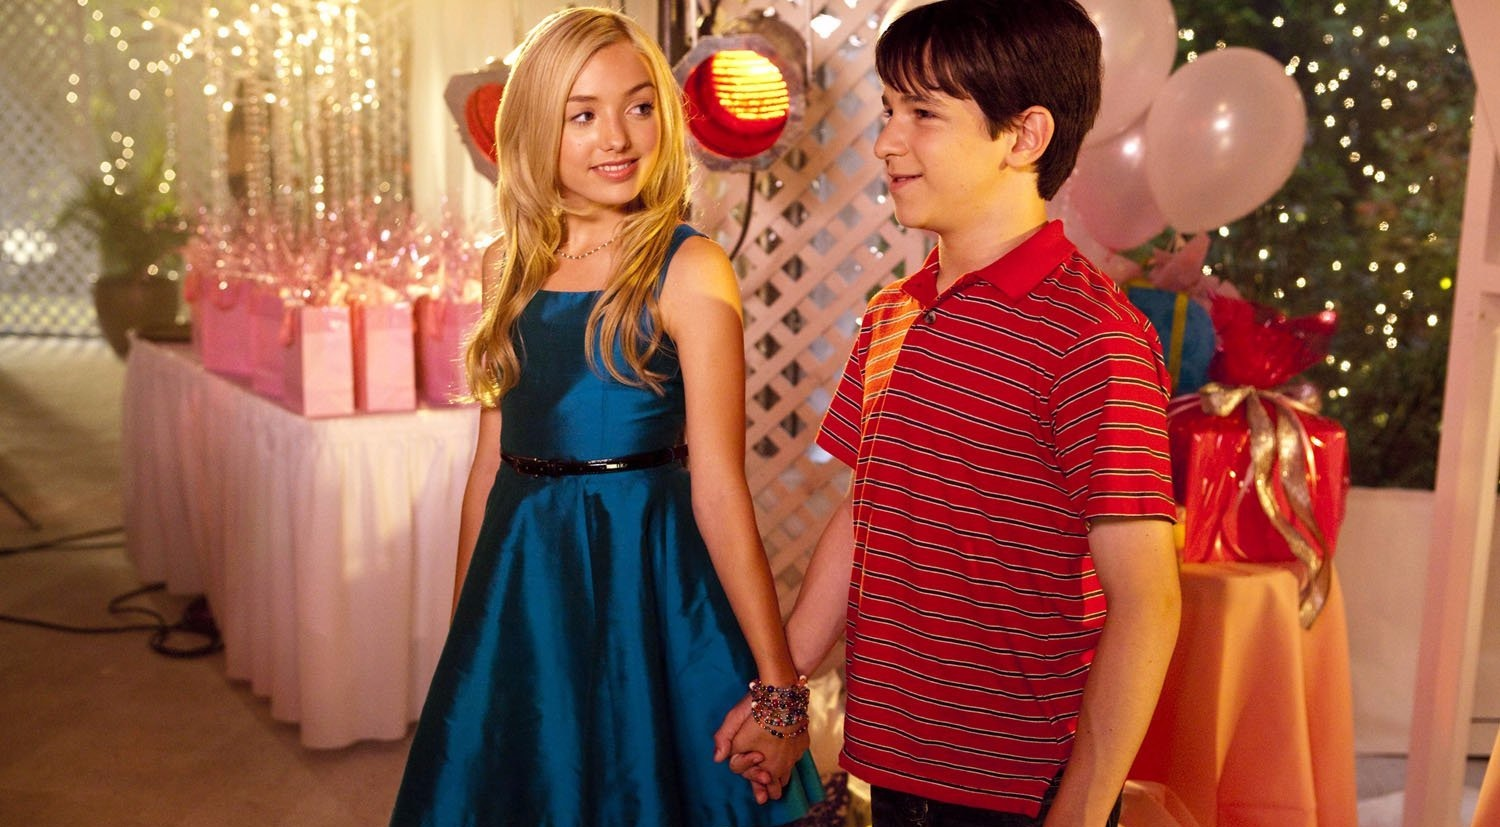 Peyton List and Zachary Gordon clasping hands on set of movie 'Diary of a Wimpy Kid: Dog Days'. They play Holly Hills and Greg Heffley in the film fraanchise.